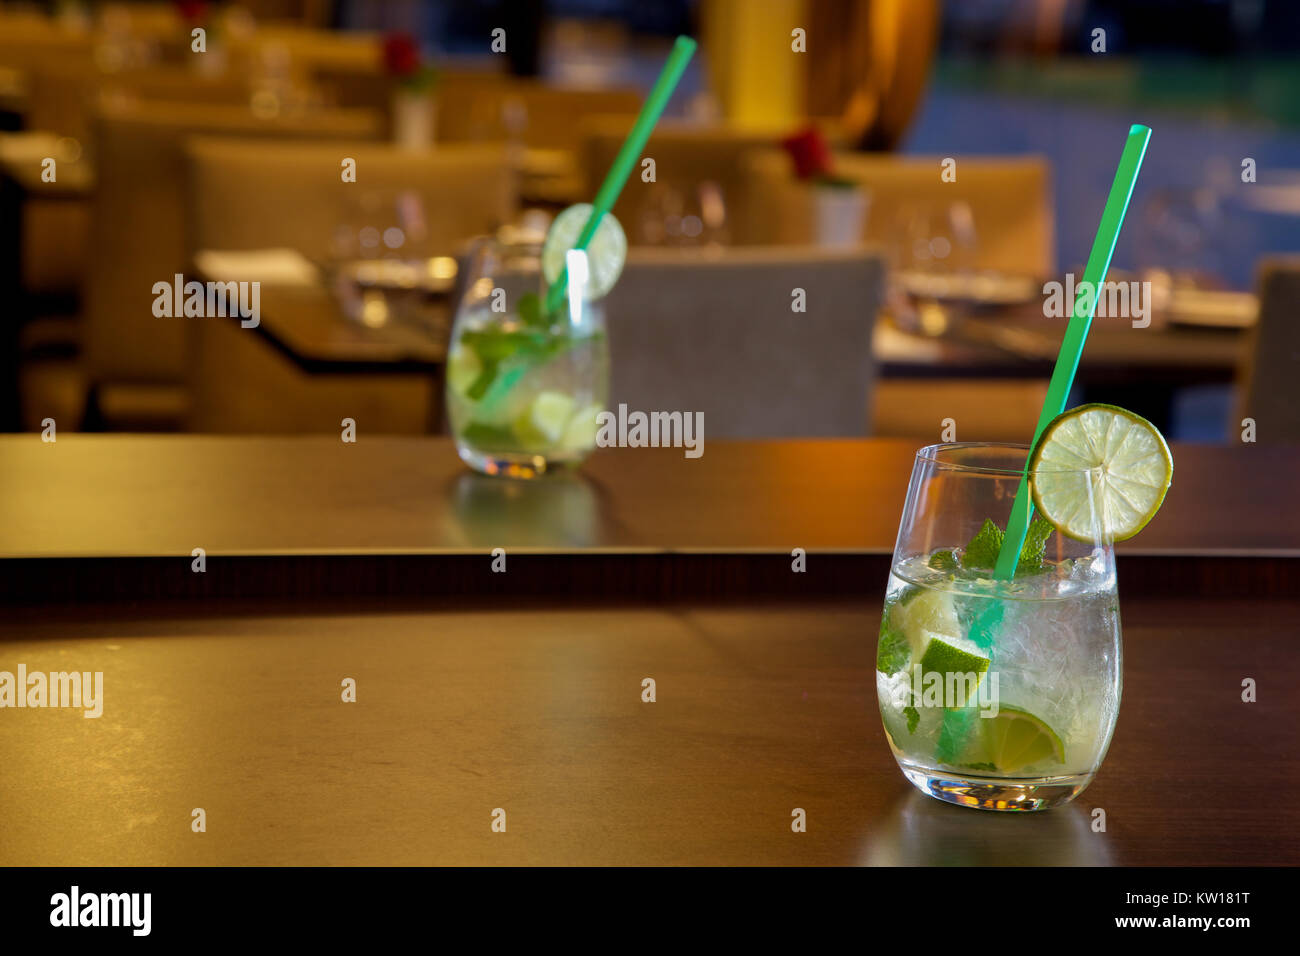 Mojito cocktail on wooden table at a cafe blurred background - Stock Image